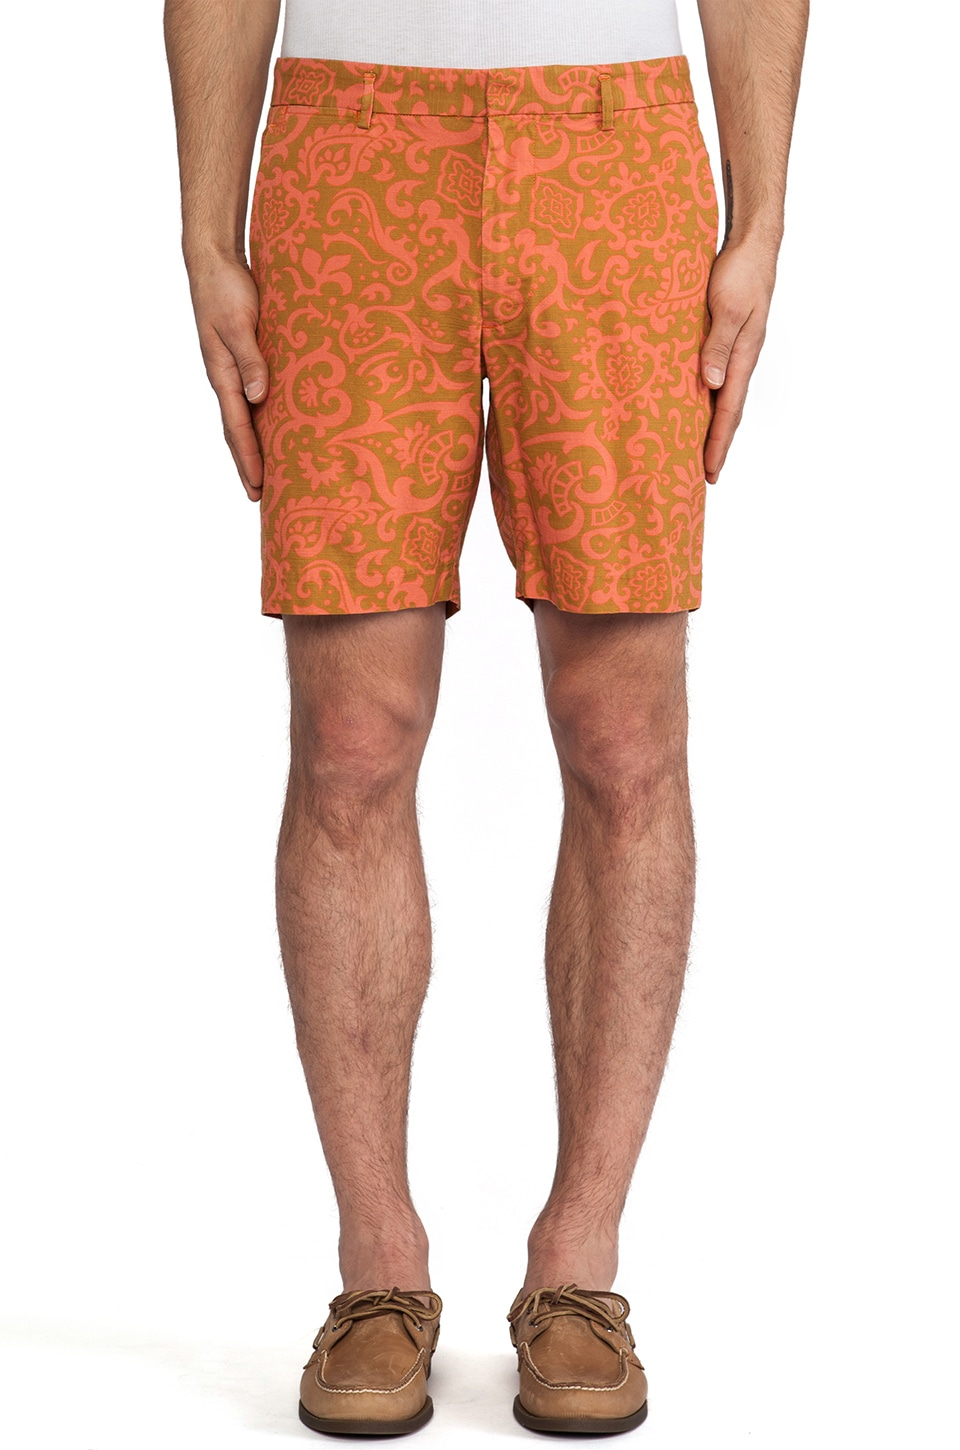 Marc by Marc Jacobs Malibu Print Cotton Short in Orange Multi